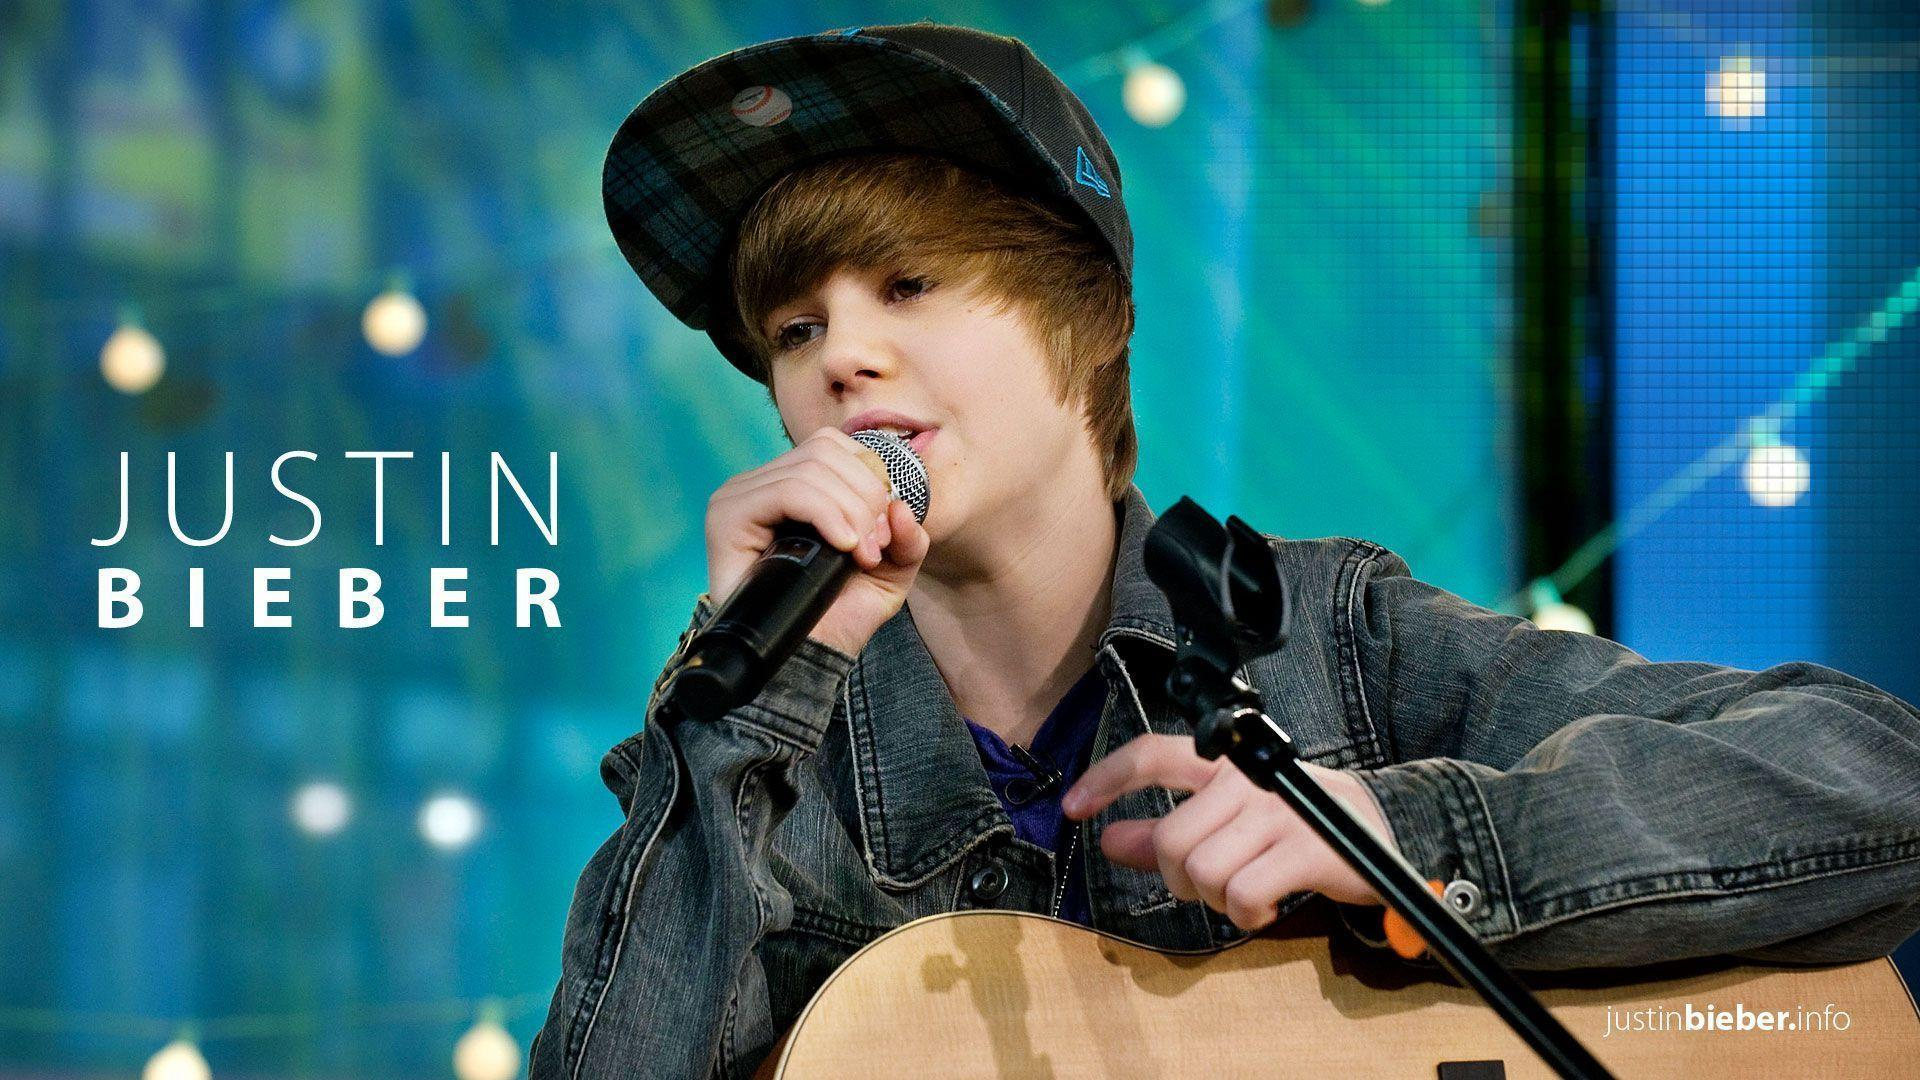 Justin Bieber Wallpapers and Pictures